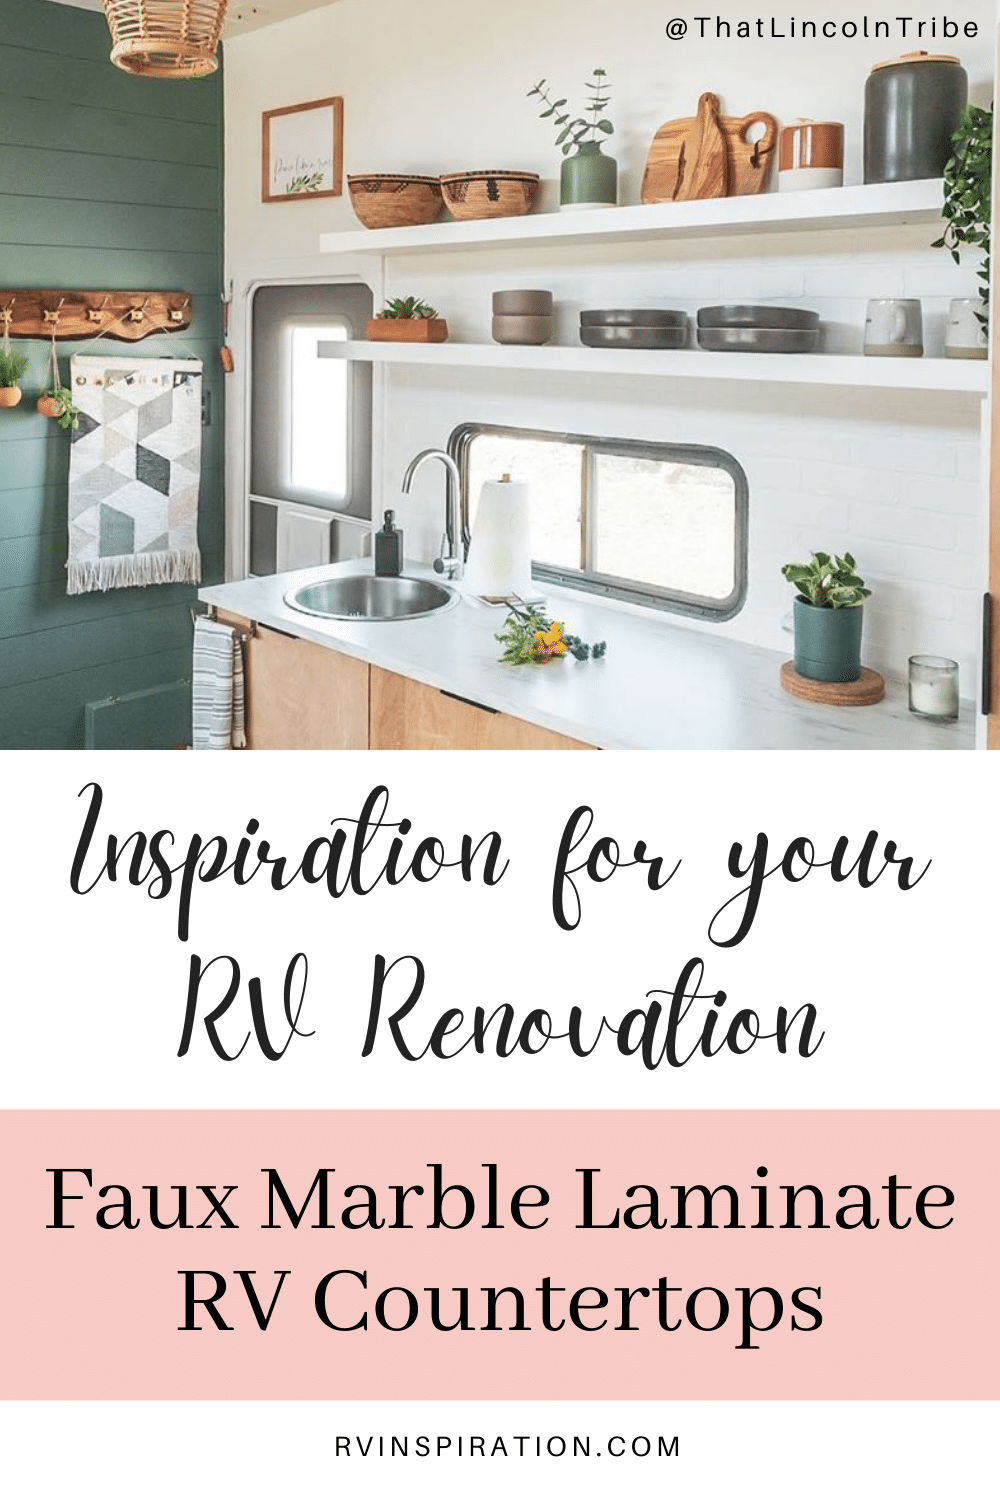 Update your RV kitchen with a beautiful new countertop. #RVrenovation #RVkitchen #RVmakeover #RVcountertop